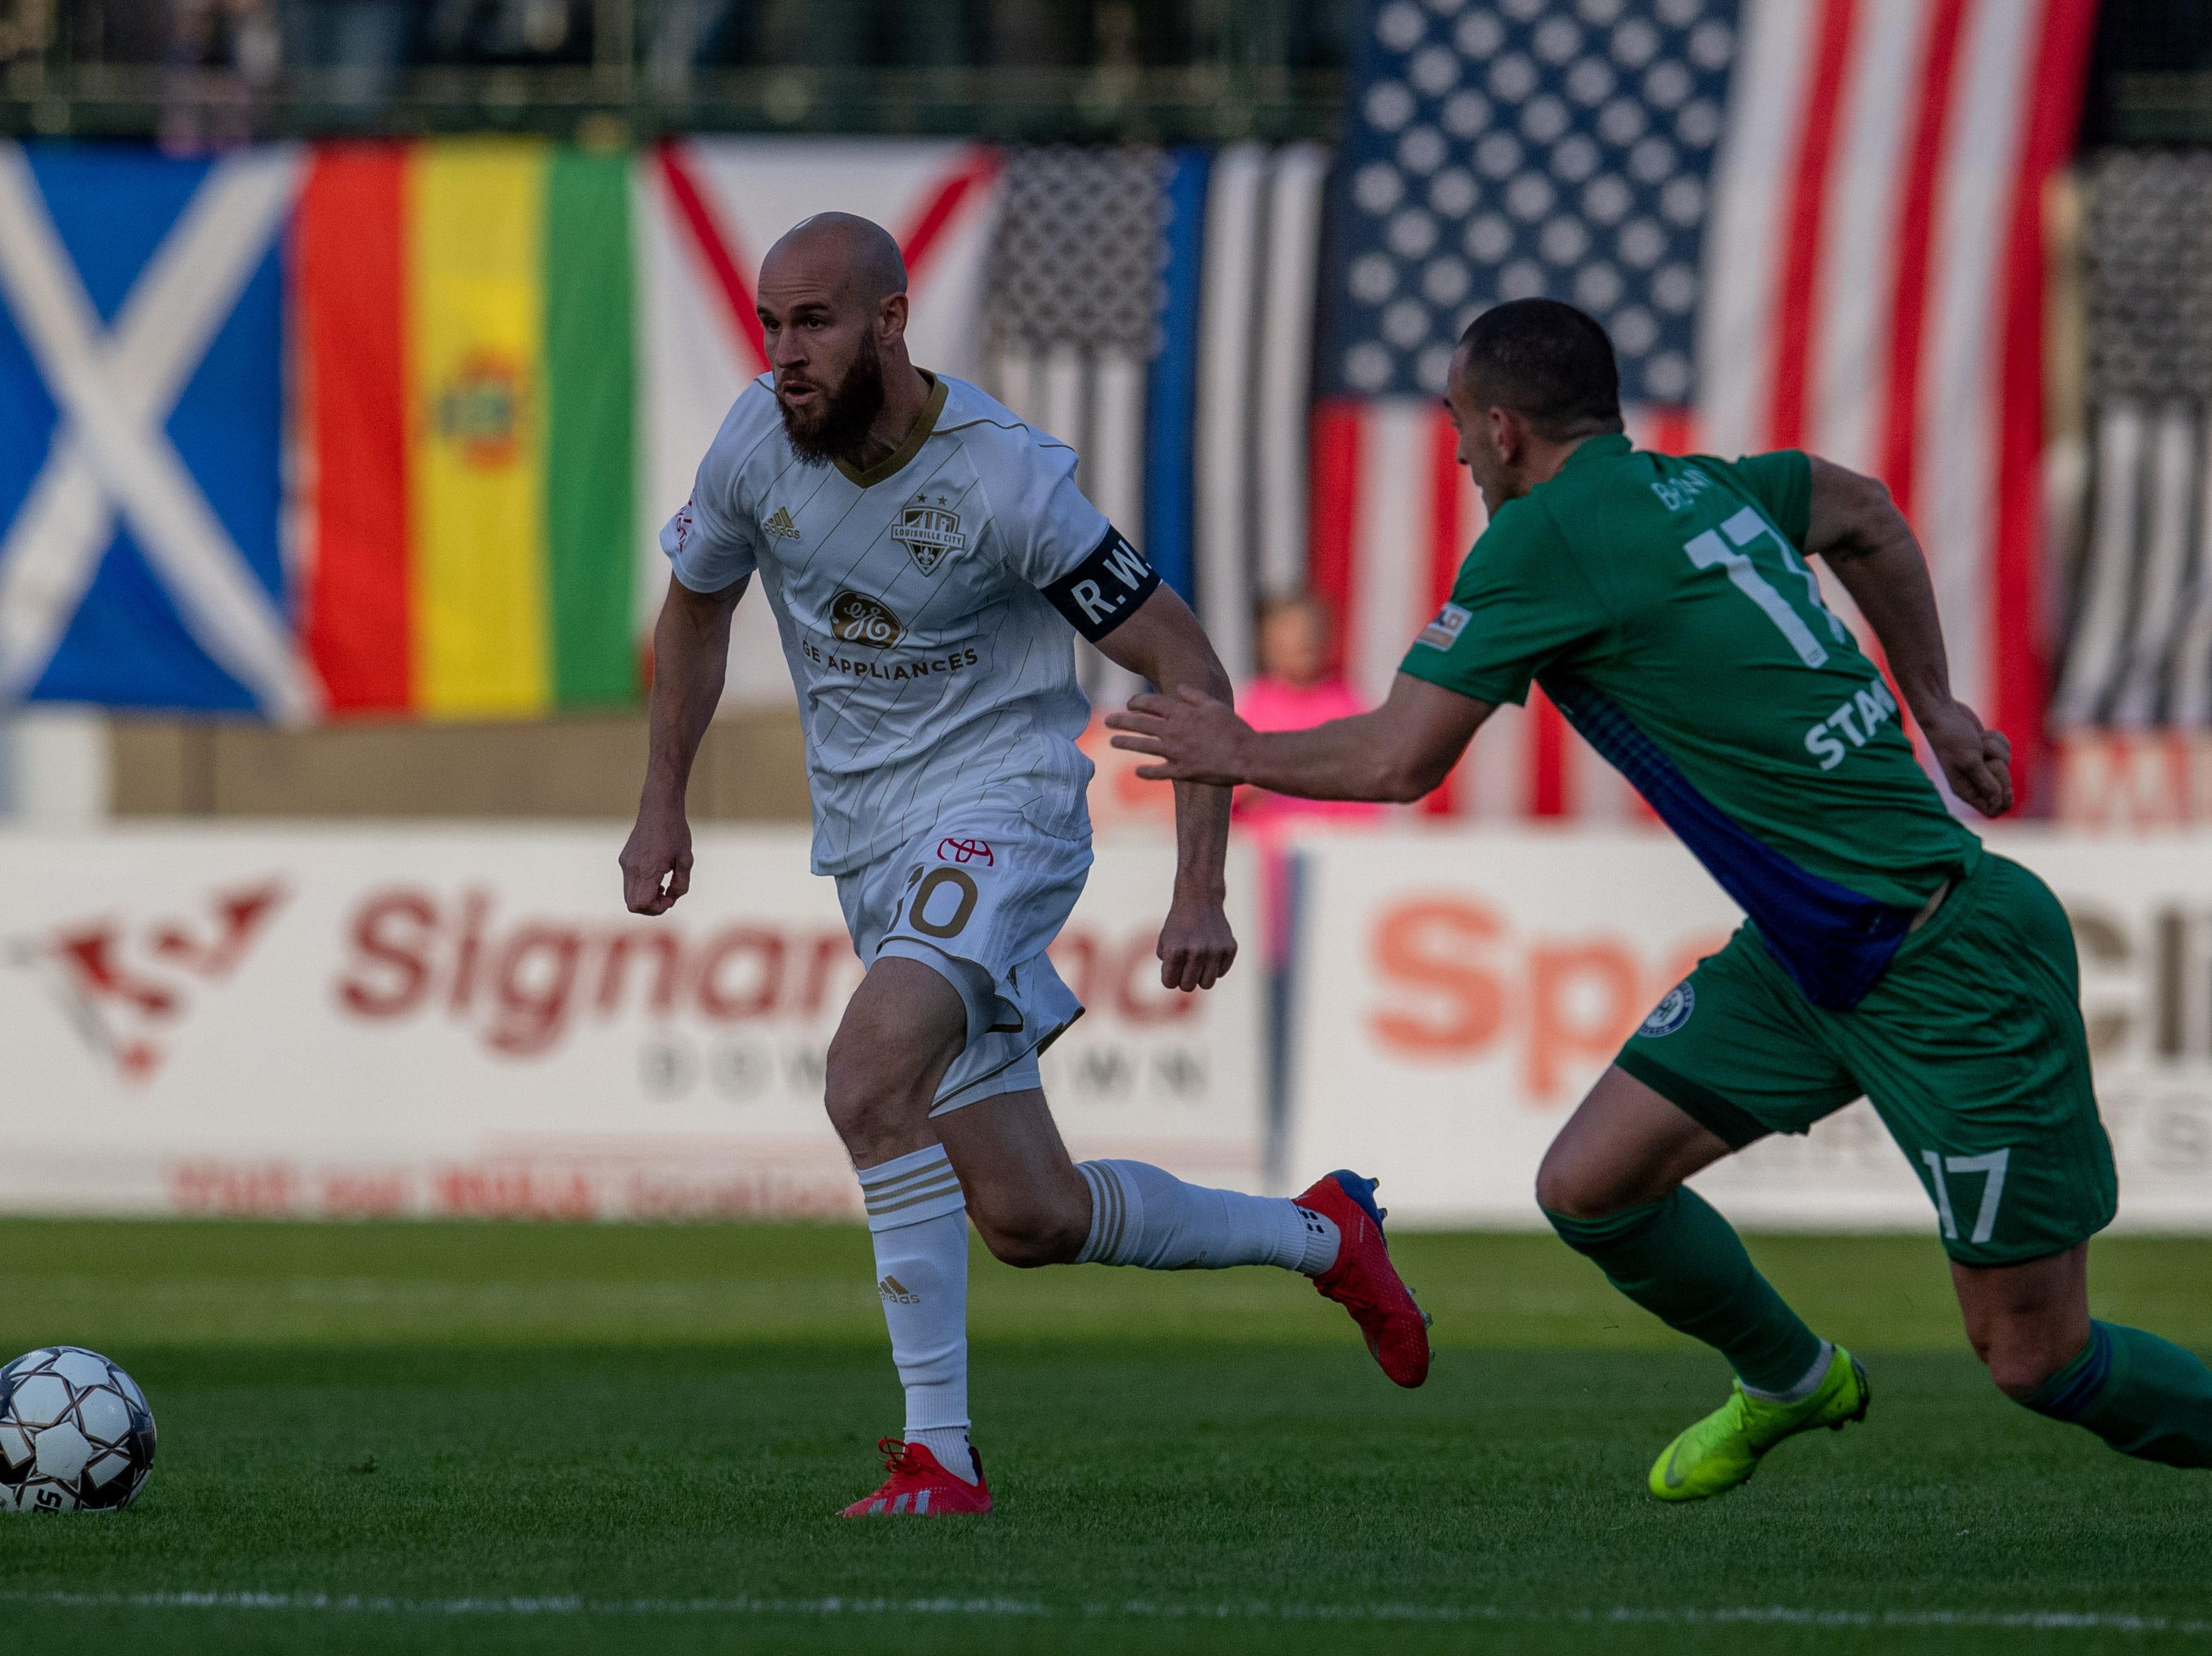 Louisville City FC midfielder Brian Ownby (10) plays against Hartford Athletic Jonathan Brown during the season opening match in Louisville, Ky., Saturday, March 23, 2019.